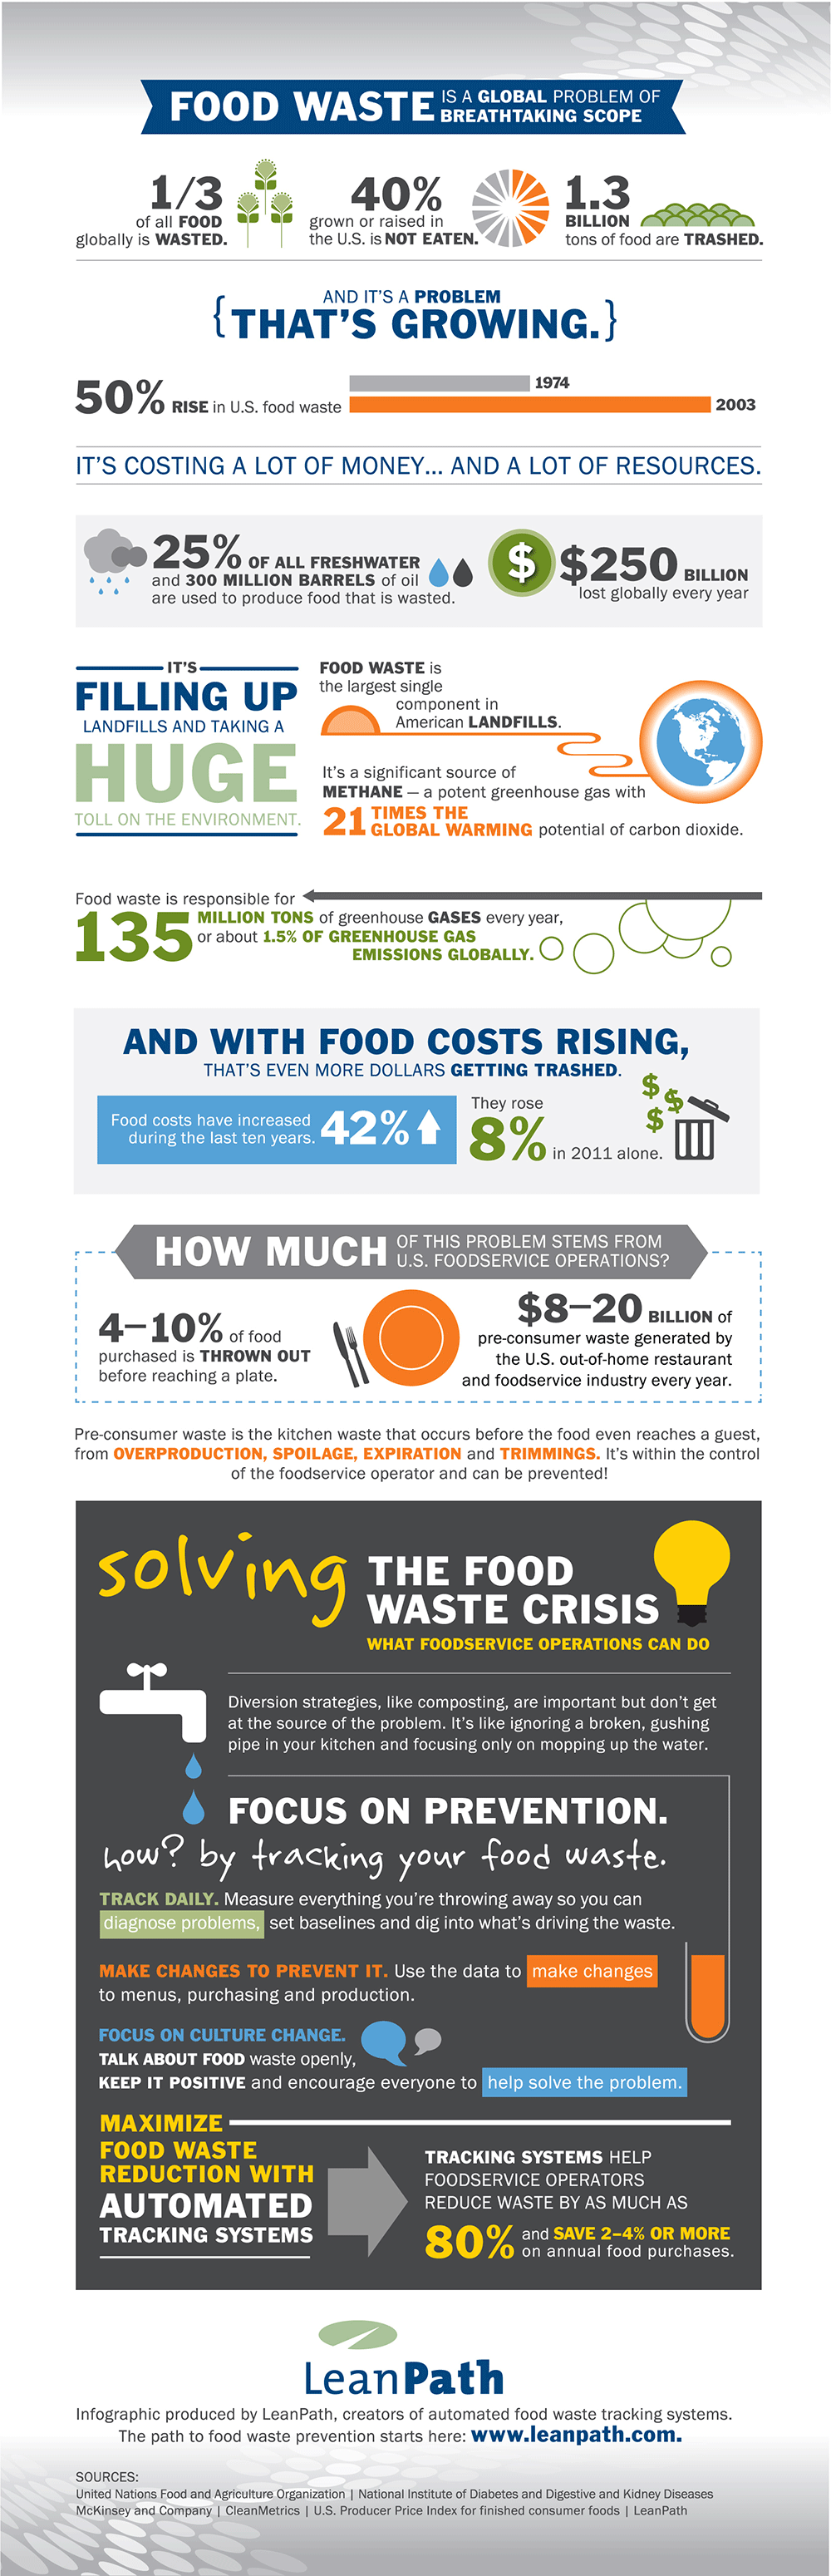 LeanPath food waste statistics infographic